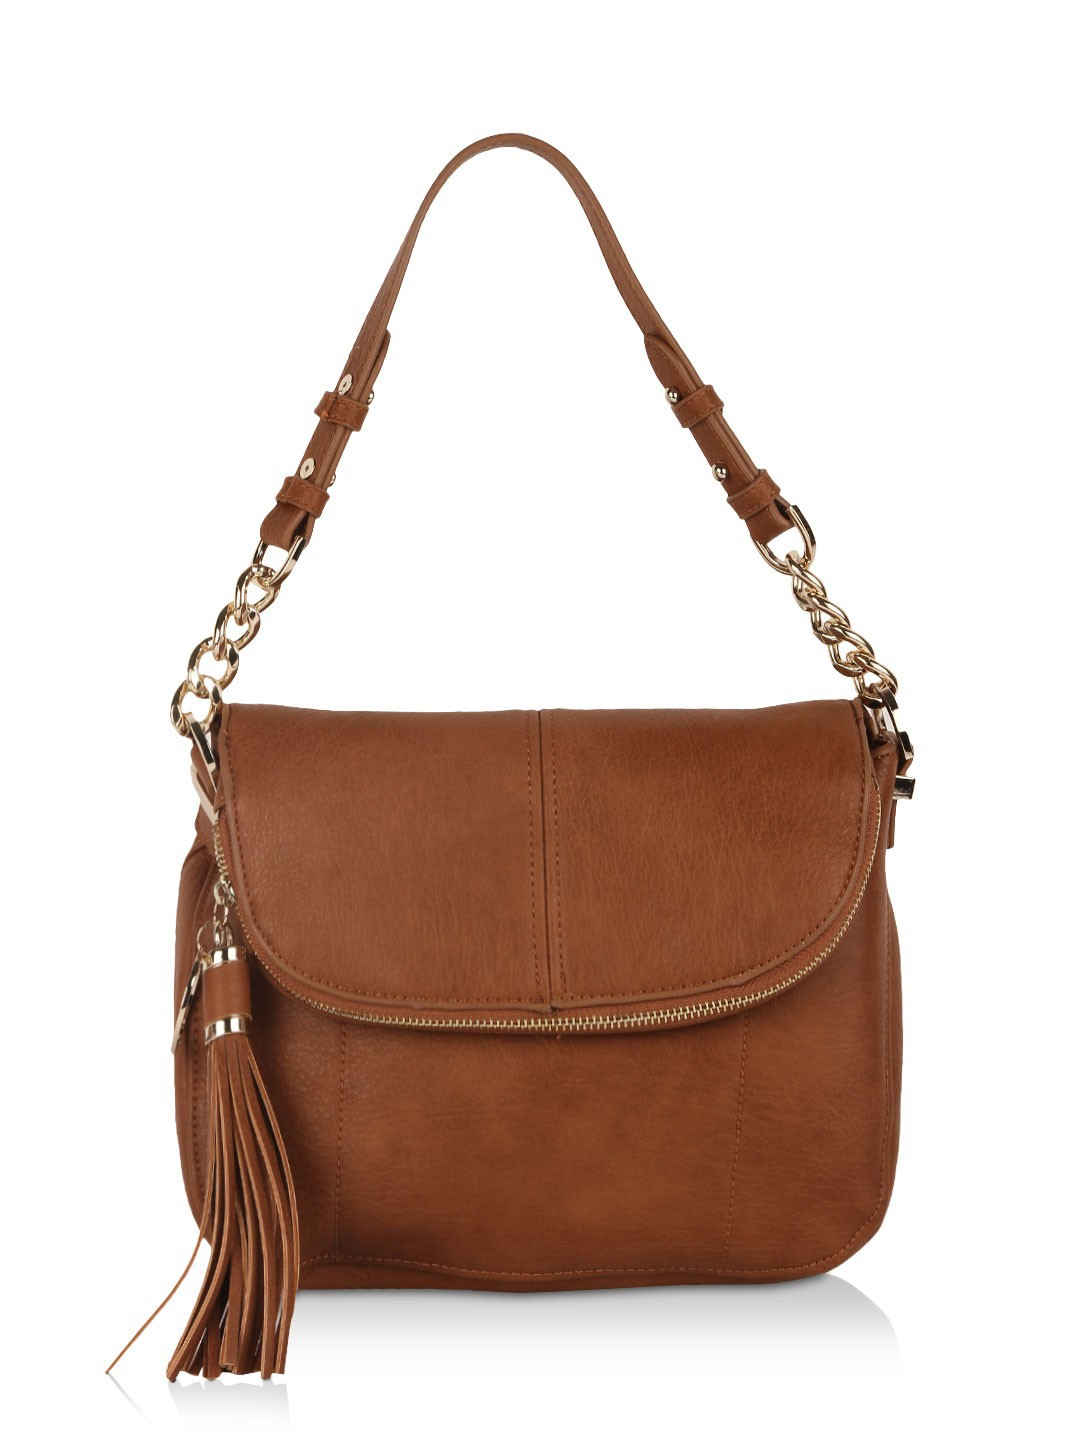 Buy FOREVER NEW Tassel Detail Sling Bag For Women - Women's Brown ...